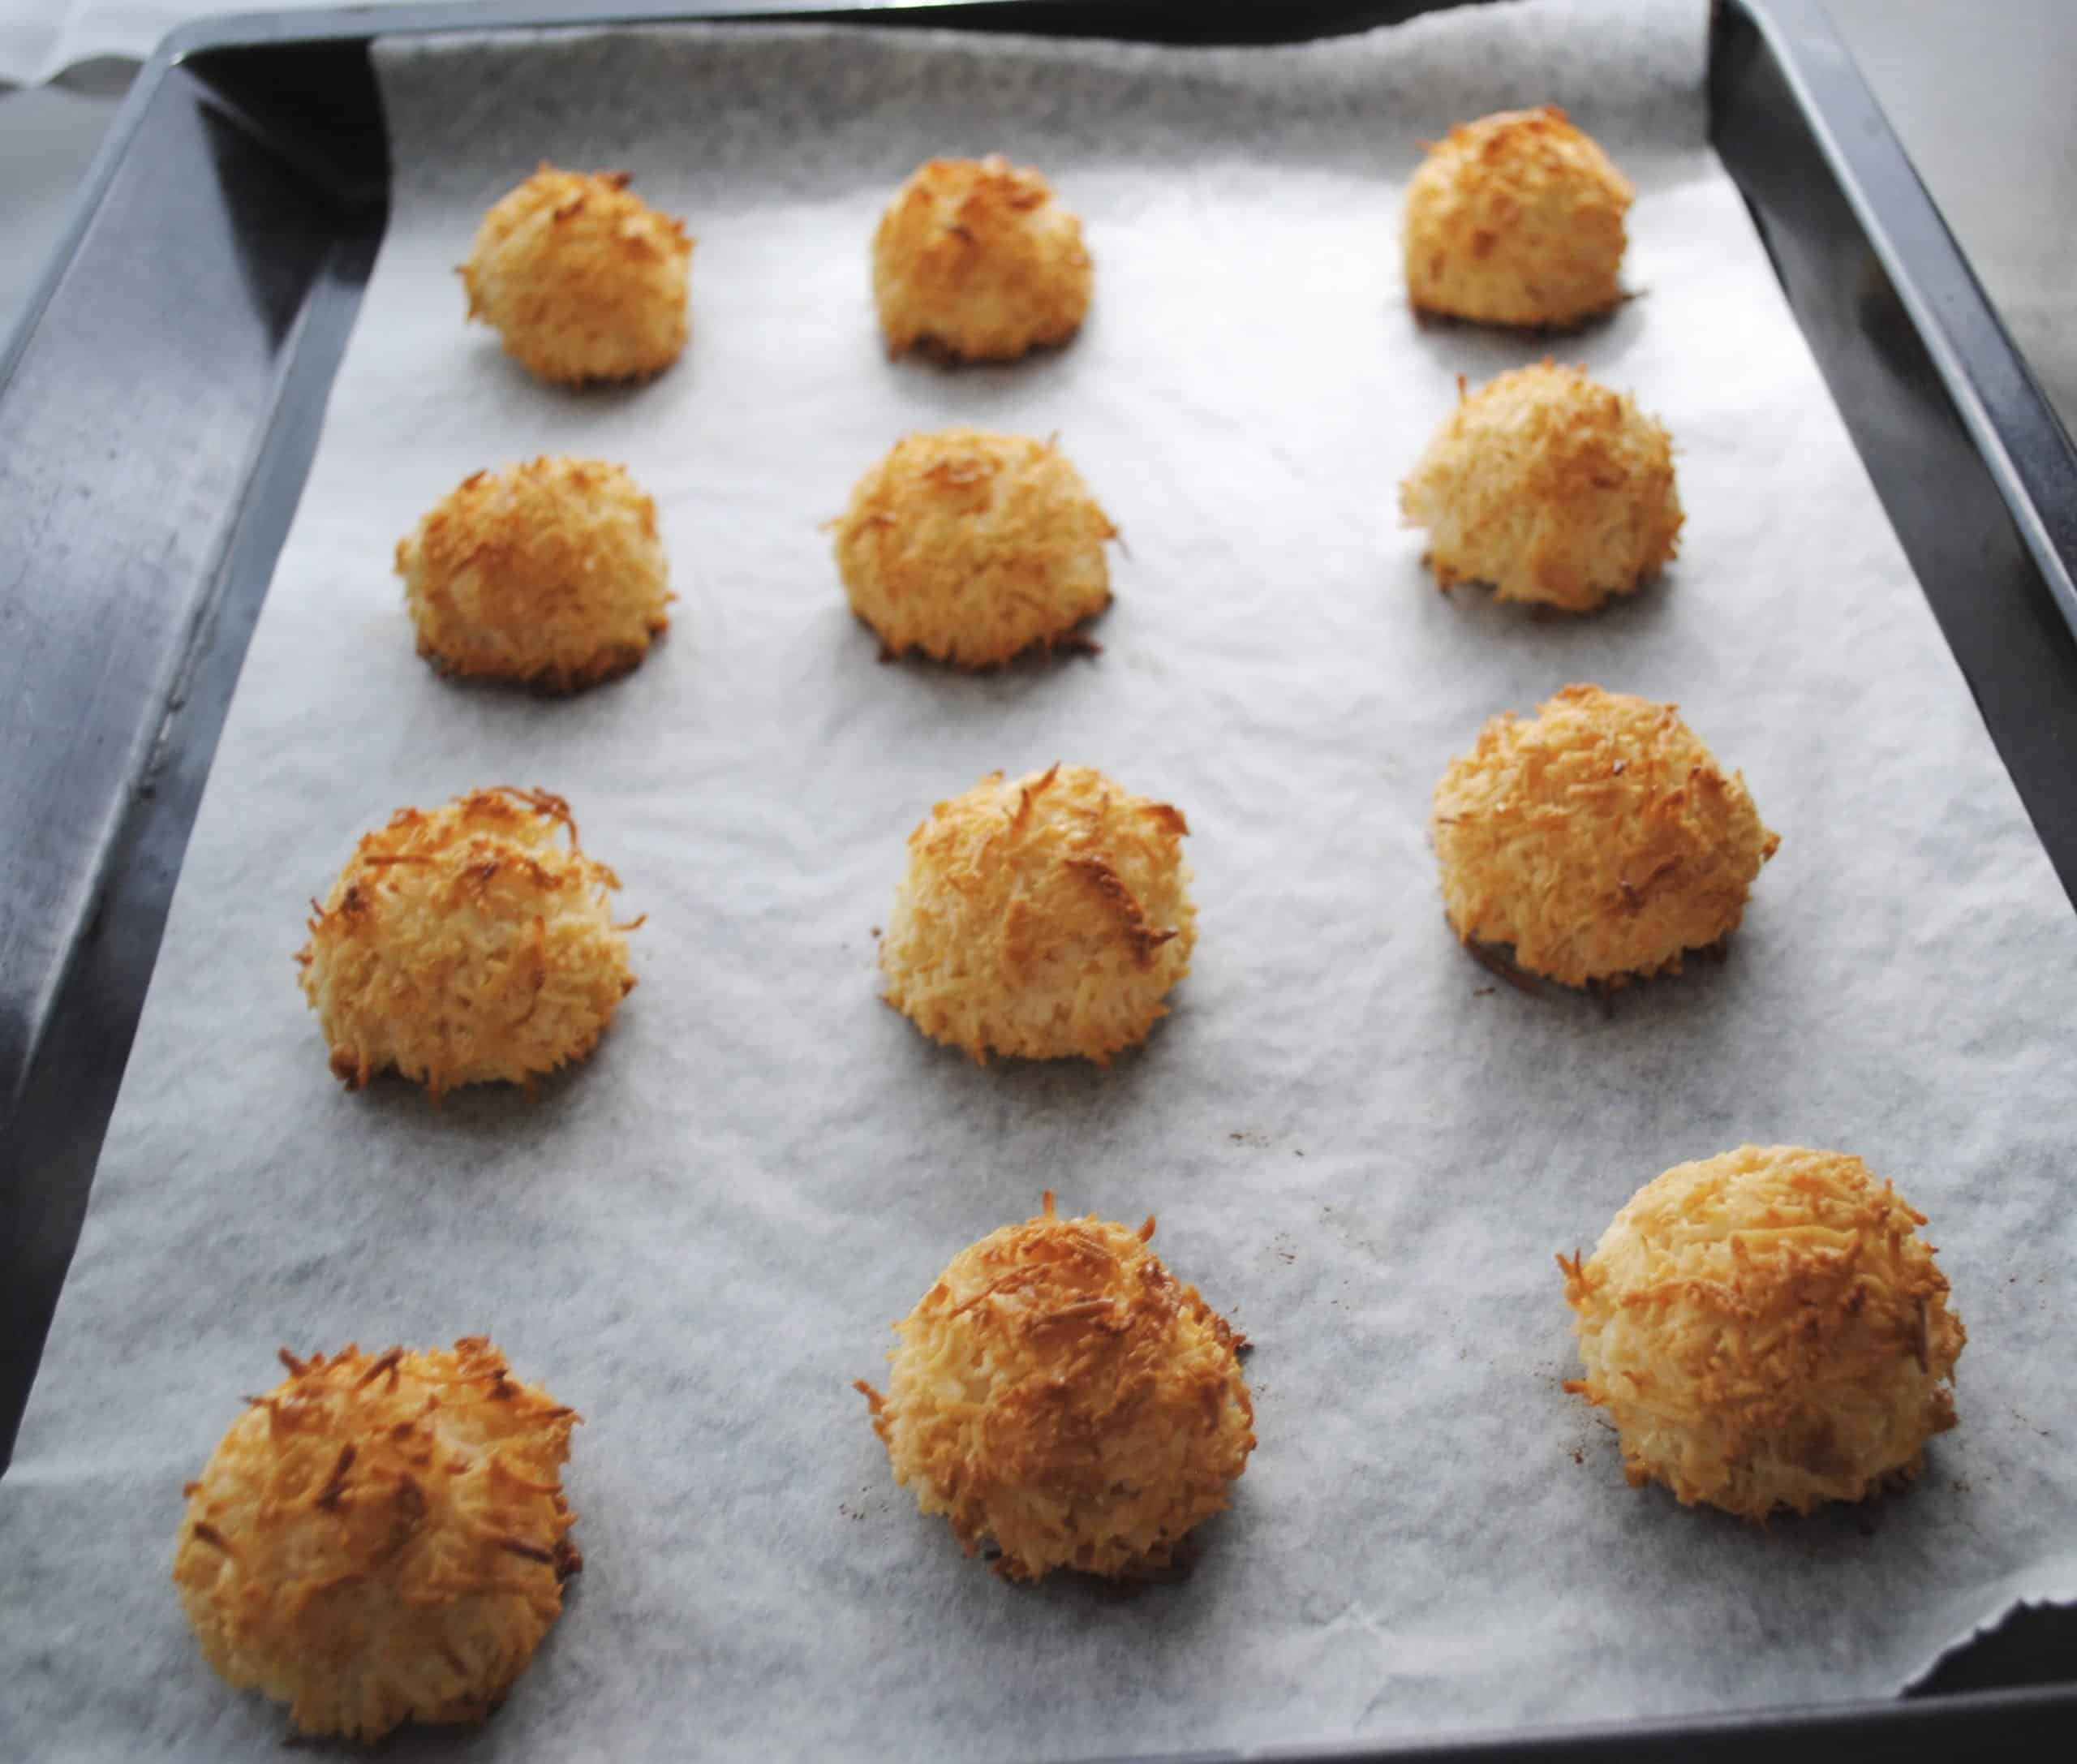 chocolate dipped coconut macaroons on black baking tray freshly baked and golden